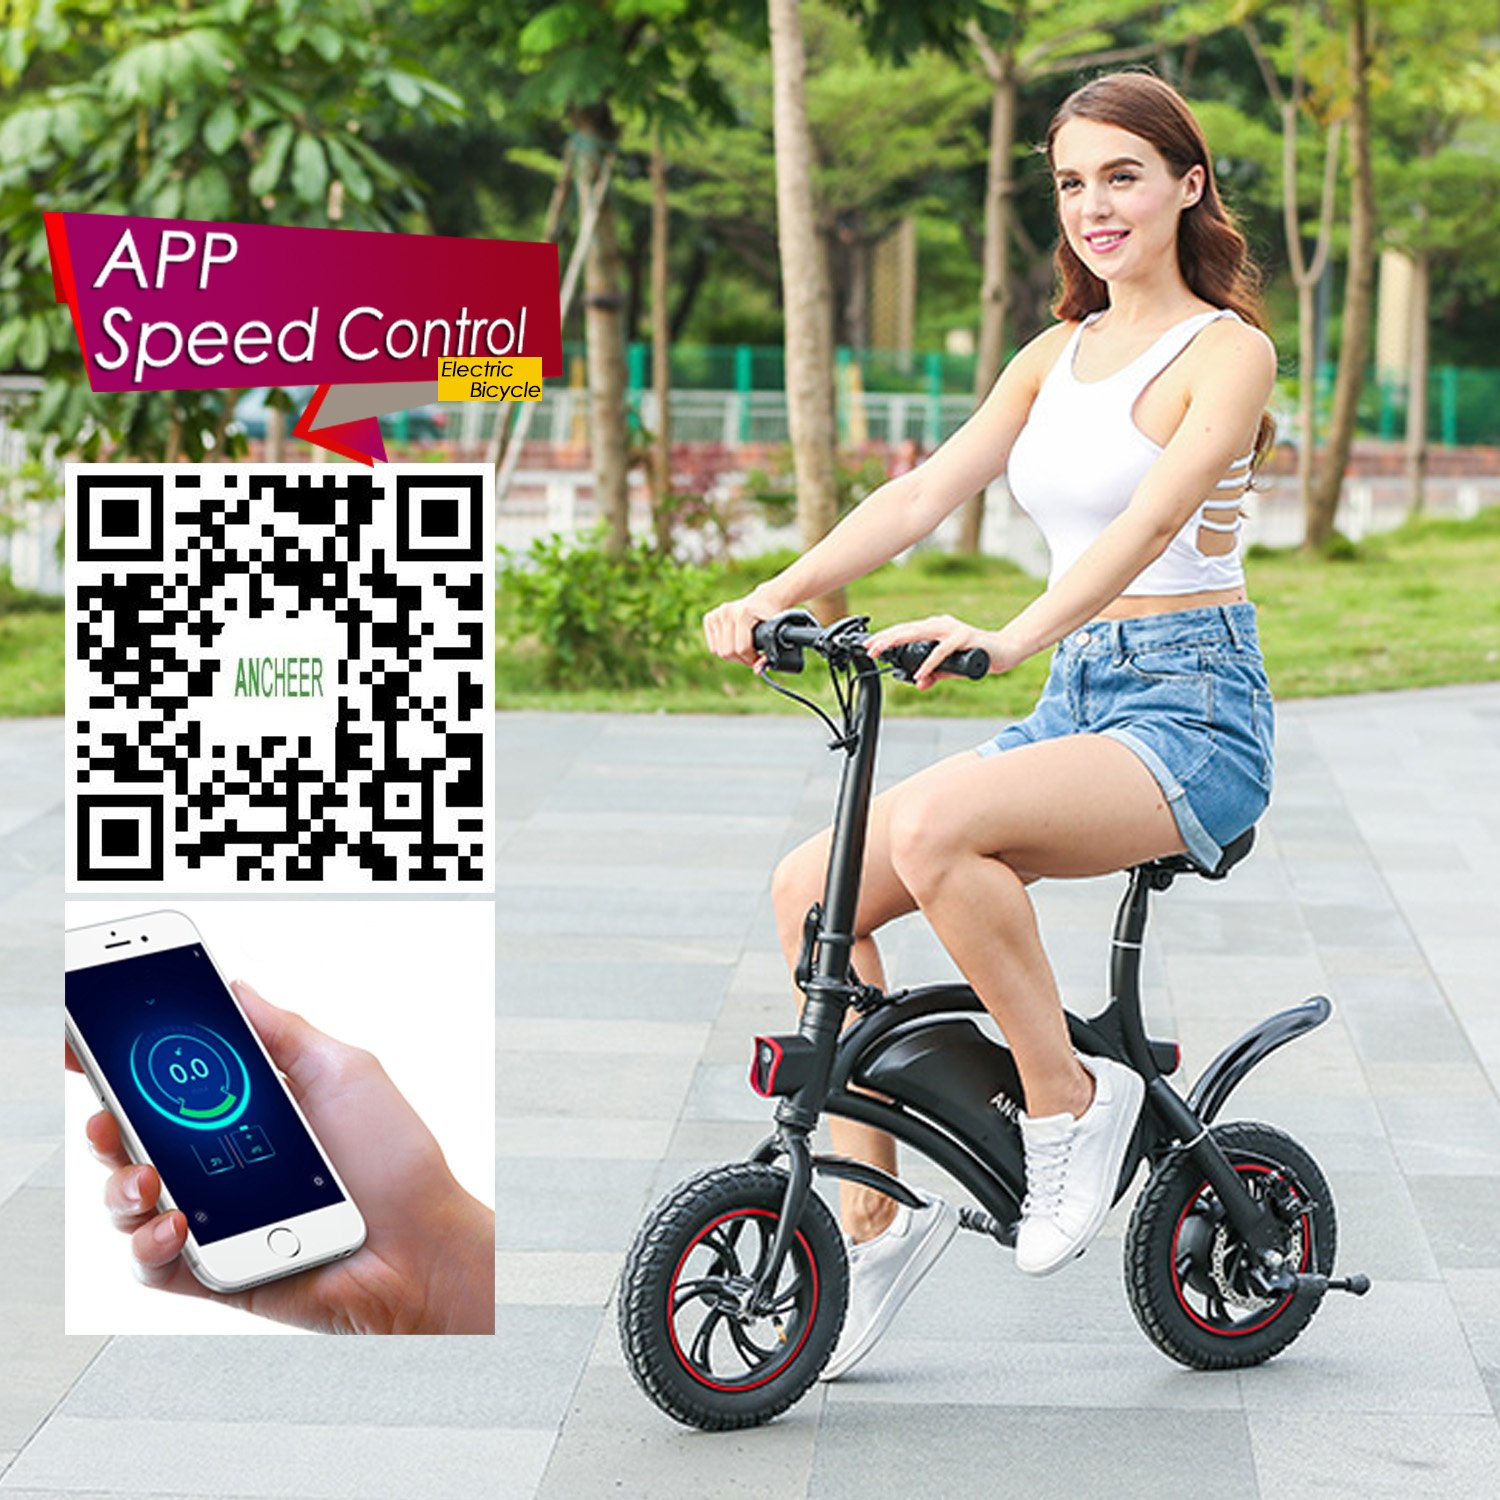 REVIEW ANCHEER Folding Electric Bicycle E-Bike Scooter 350W Powerful Motor Waterproof Ebike with 12 Mile Range, APP Speed Setting | Electric Bike in Seattle WA 81mjVe2Jm4L._SL1500_